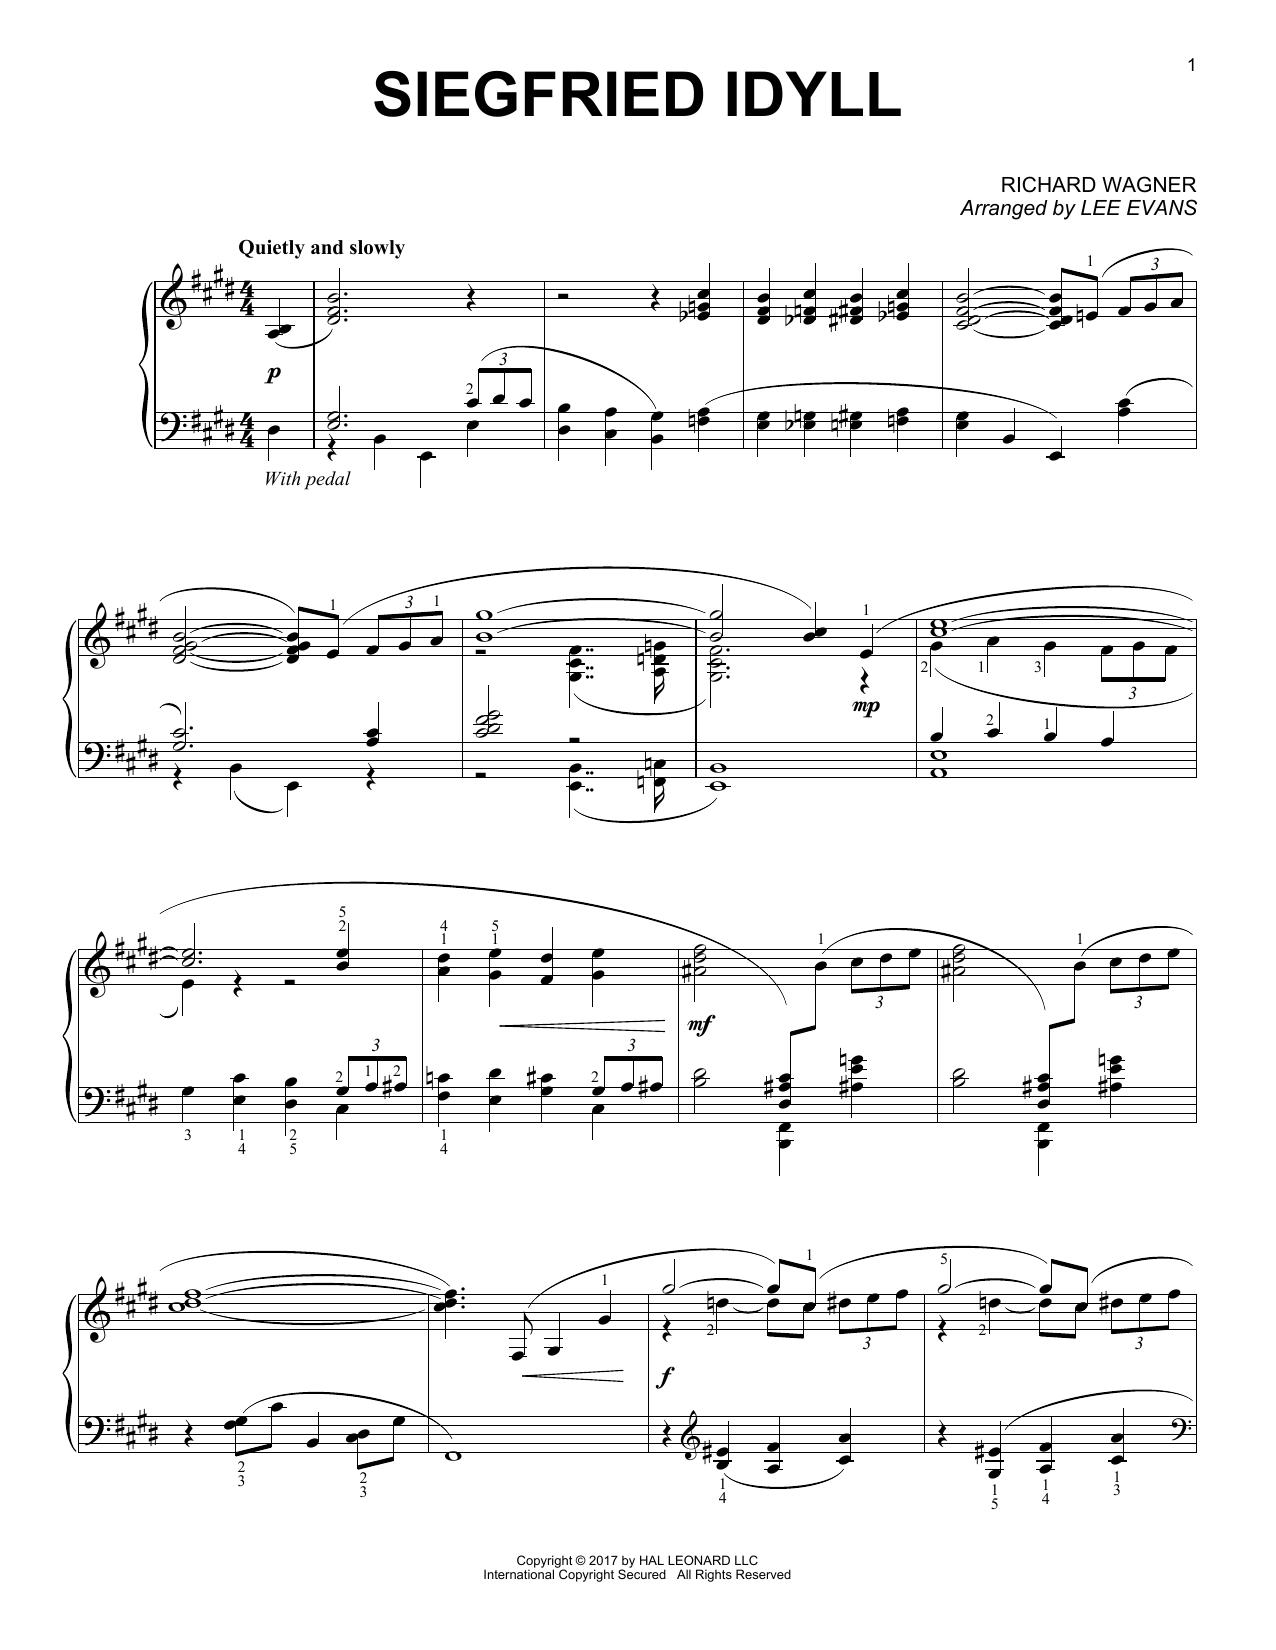 Siegried Idyll (arr. Lee Evans) (Piano Solo)